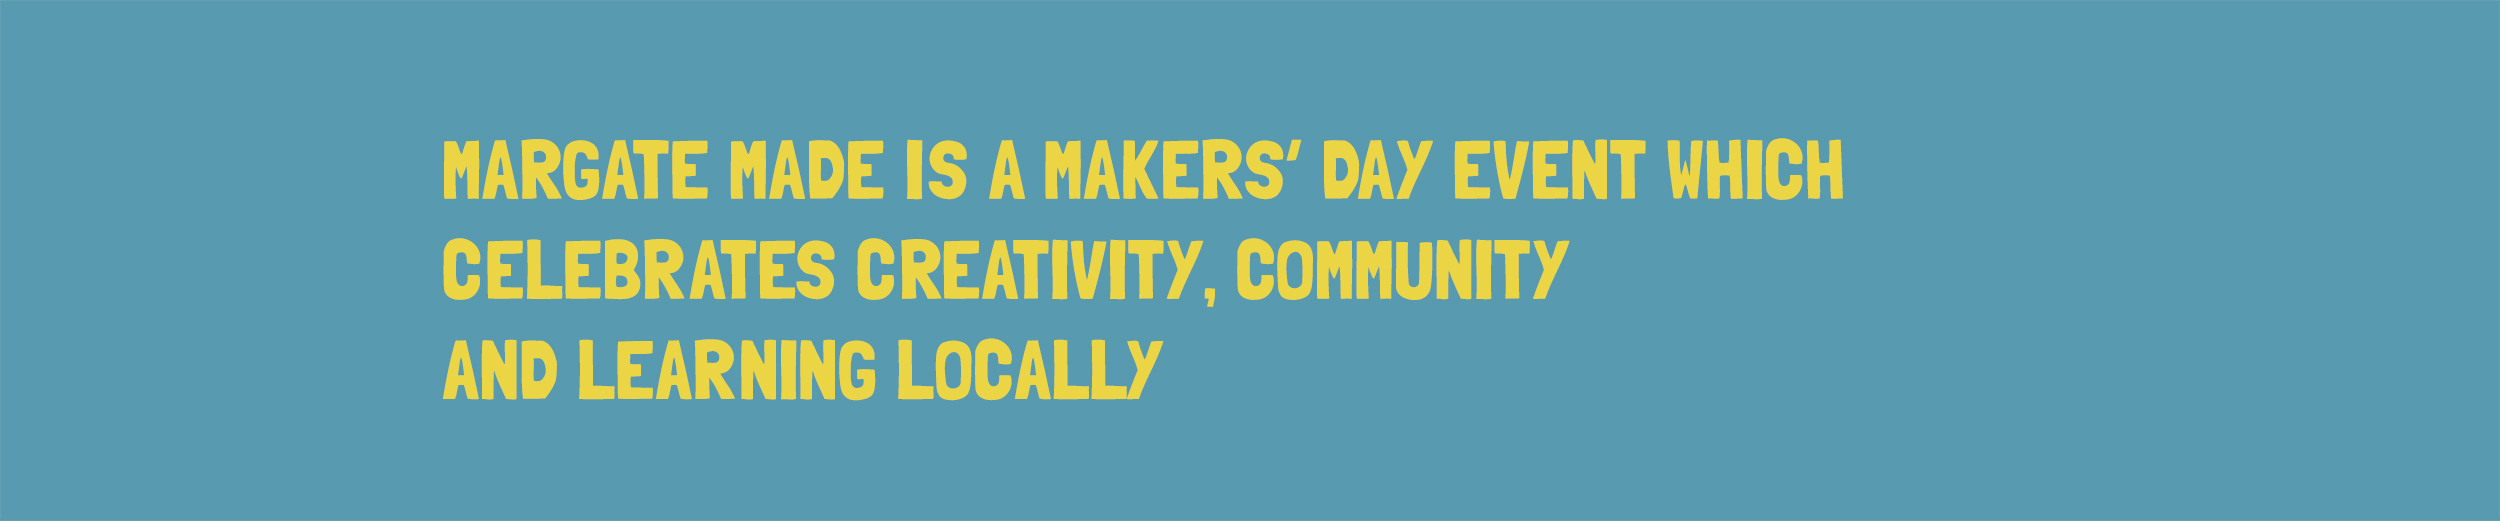 Banner reading Margate Made is a makers' day event which celebrates creativity, community and learning locally